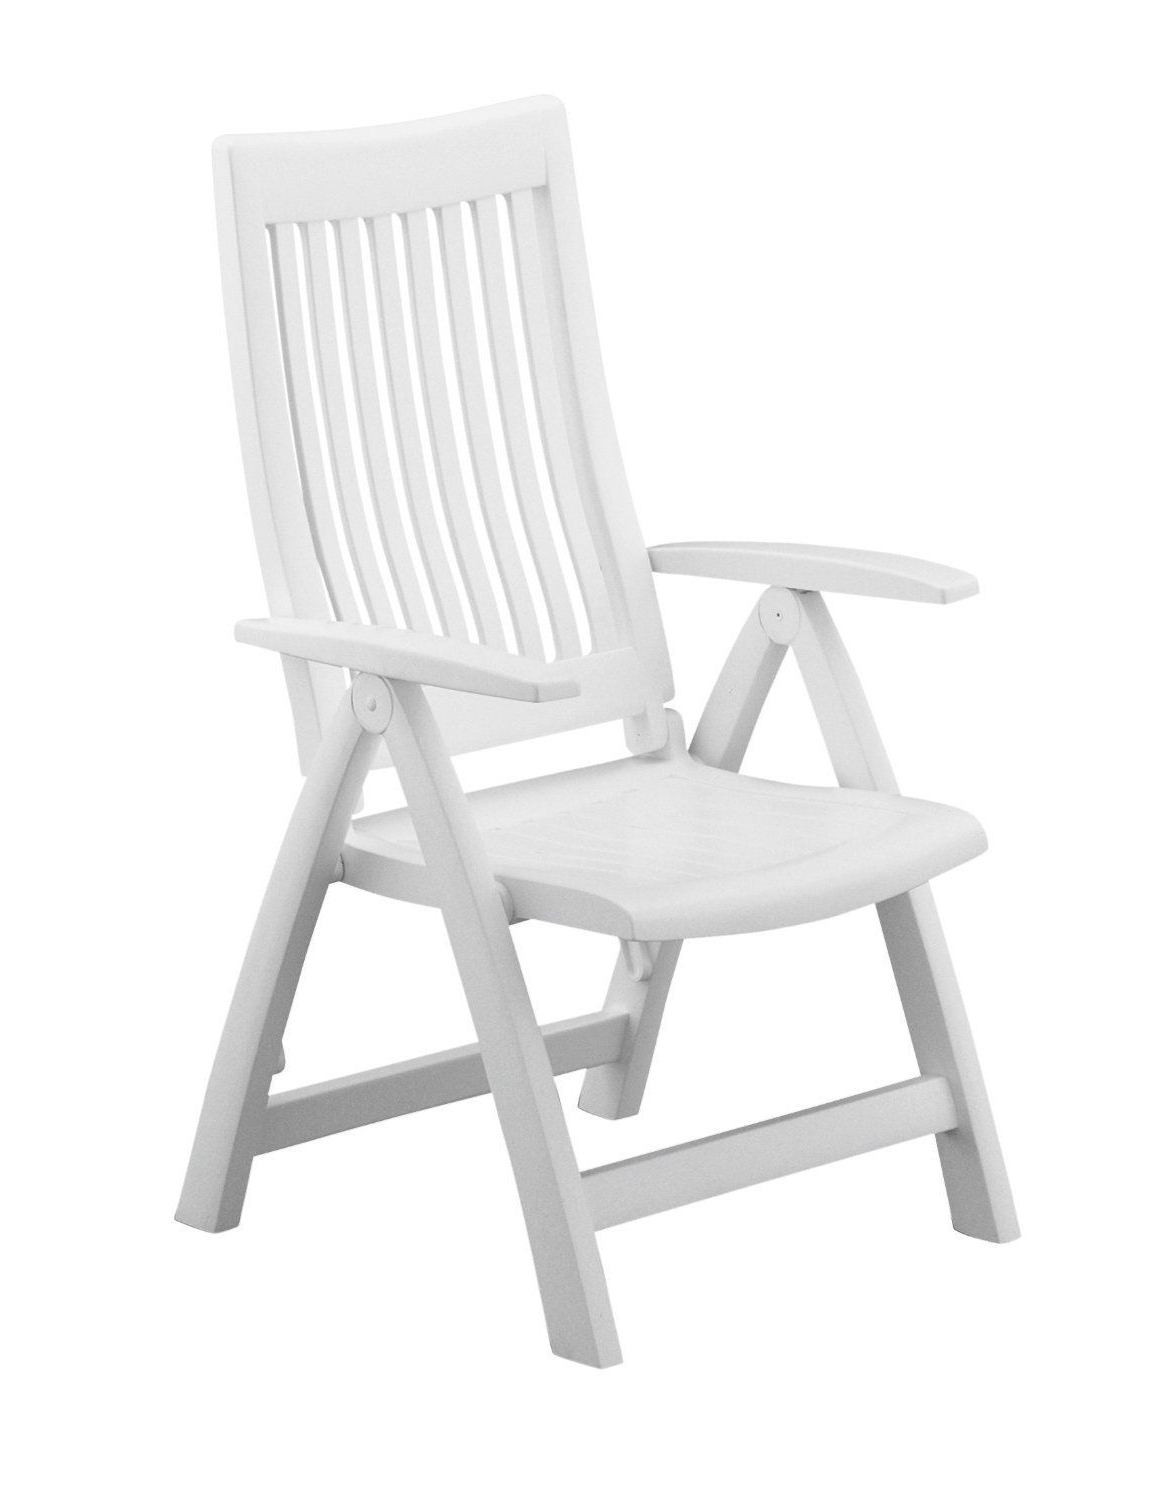 Amazon : Kettler Roma High Back Chair : Resin Chairs : Patio Pertaining To Most Popular Kettler Chaise Lounge Chairs (View 4 of 15)